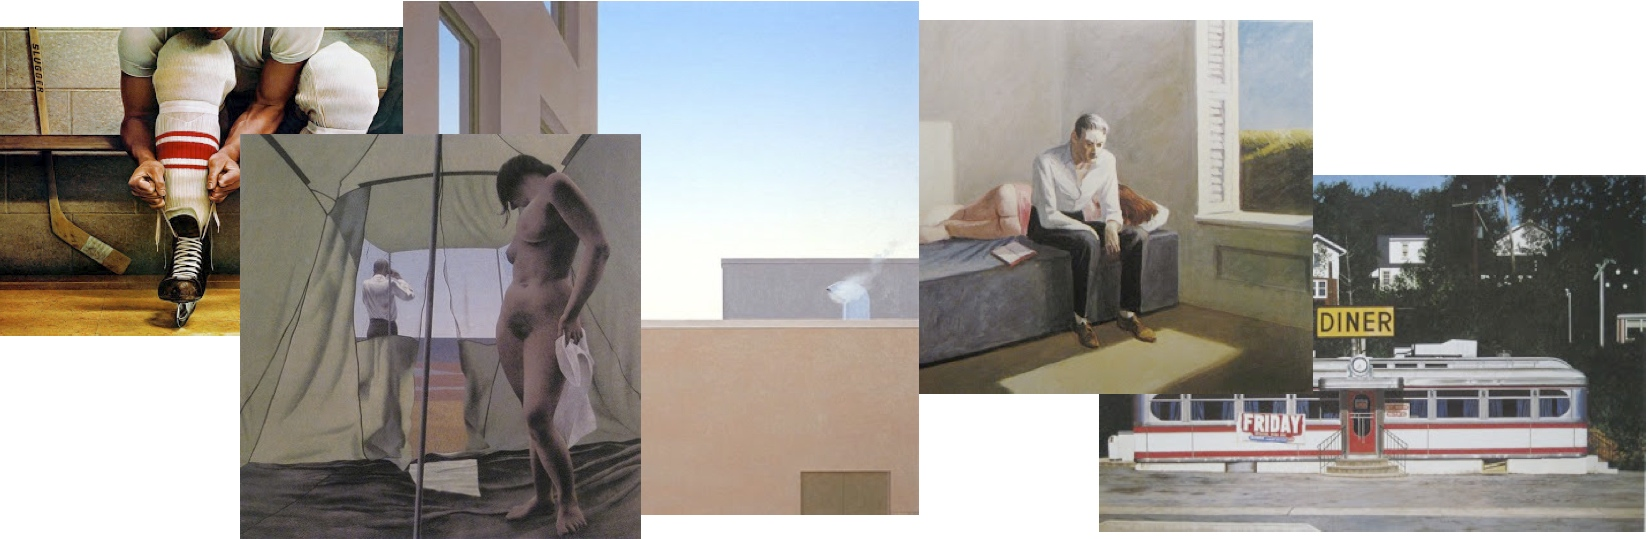 Ken Danby - 'Lacing Up' 1973, Alex Colville - 'June Noon' 1963, Christopher Pratt - 'Institution' 1973, Edward Hopper - 'Excursion into Philosophy' 1959  John Baeder - 'Diner - Camp Hill, Pa.' 1973.